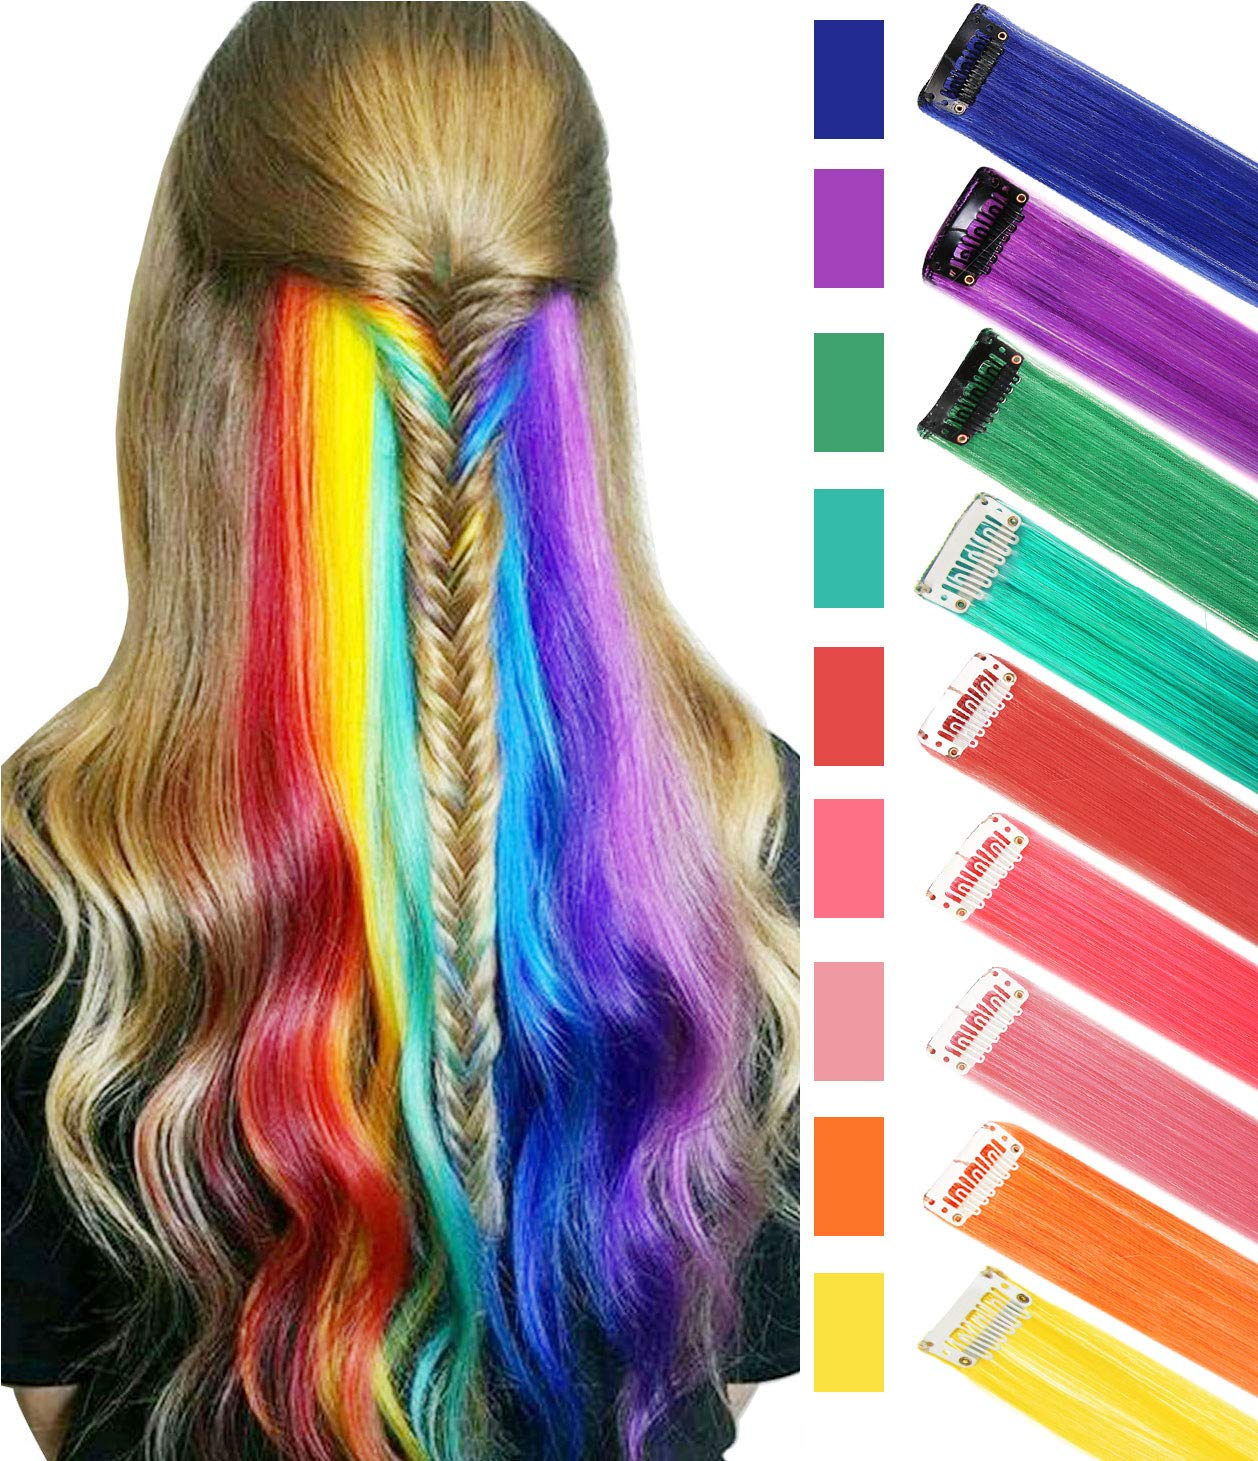 Regular discount SARARHY 9 PCS Rainbow Hair Colored Party Highl 21inch Extensions shipfree